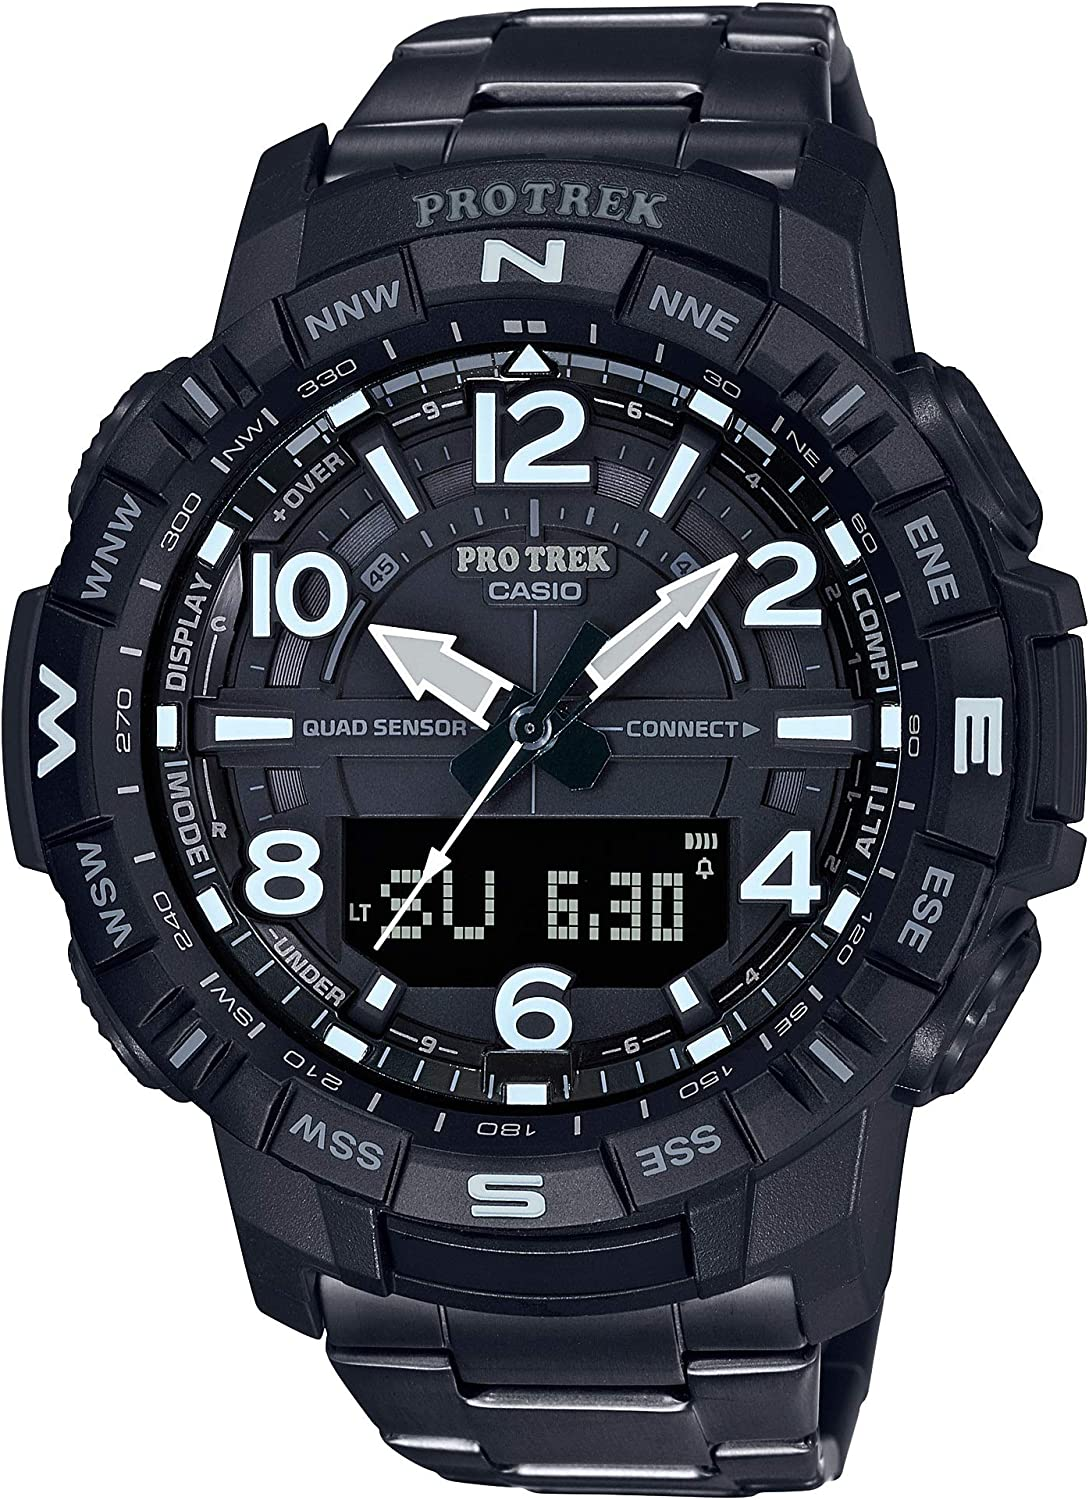 Casio Men s Pro Trek Bluetooth Connected Quartz Fitness Watch with Titanium Strap, Black, 23 Model PRT-B50YT-1CR